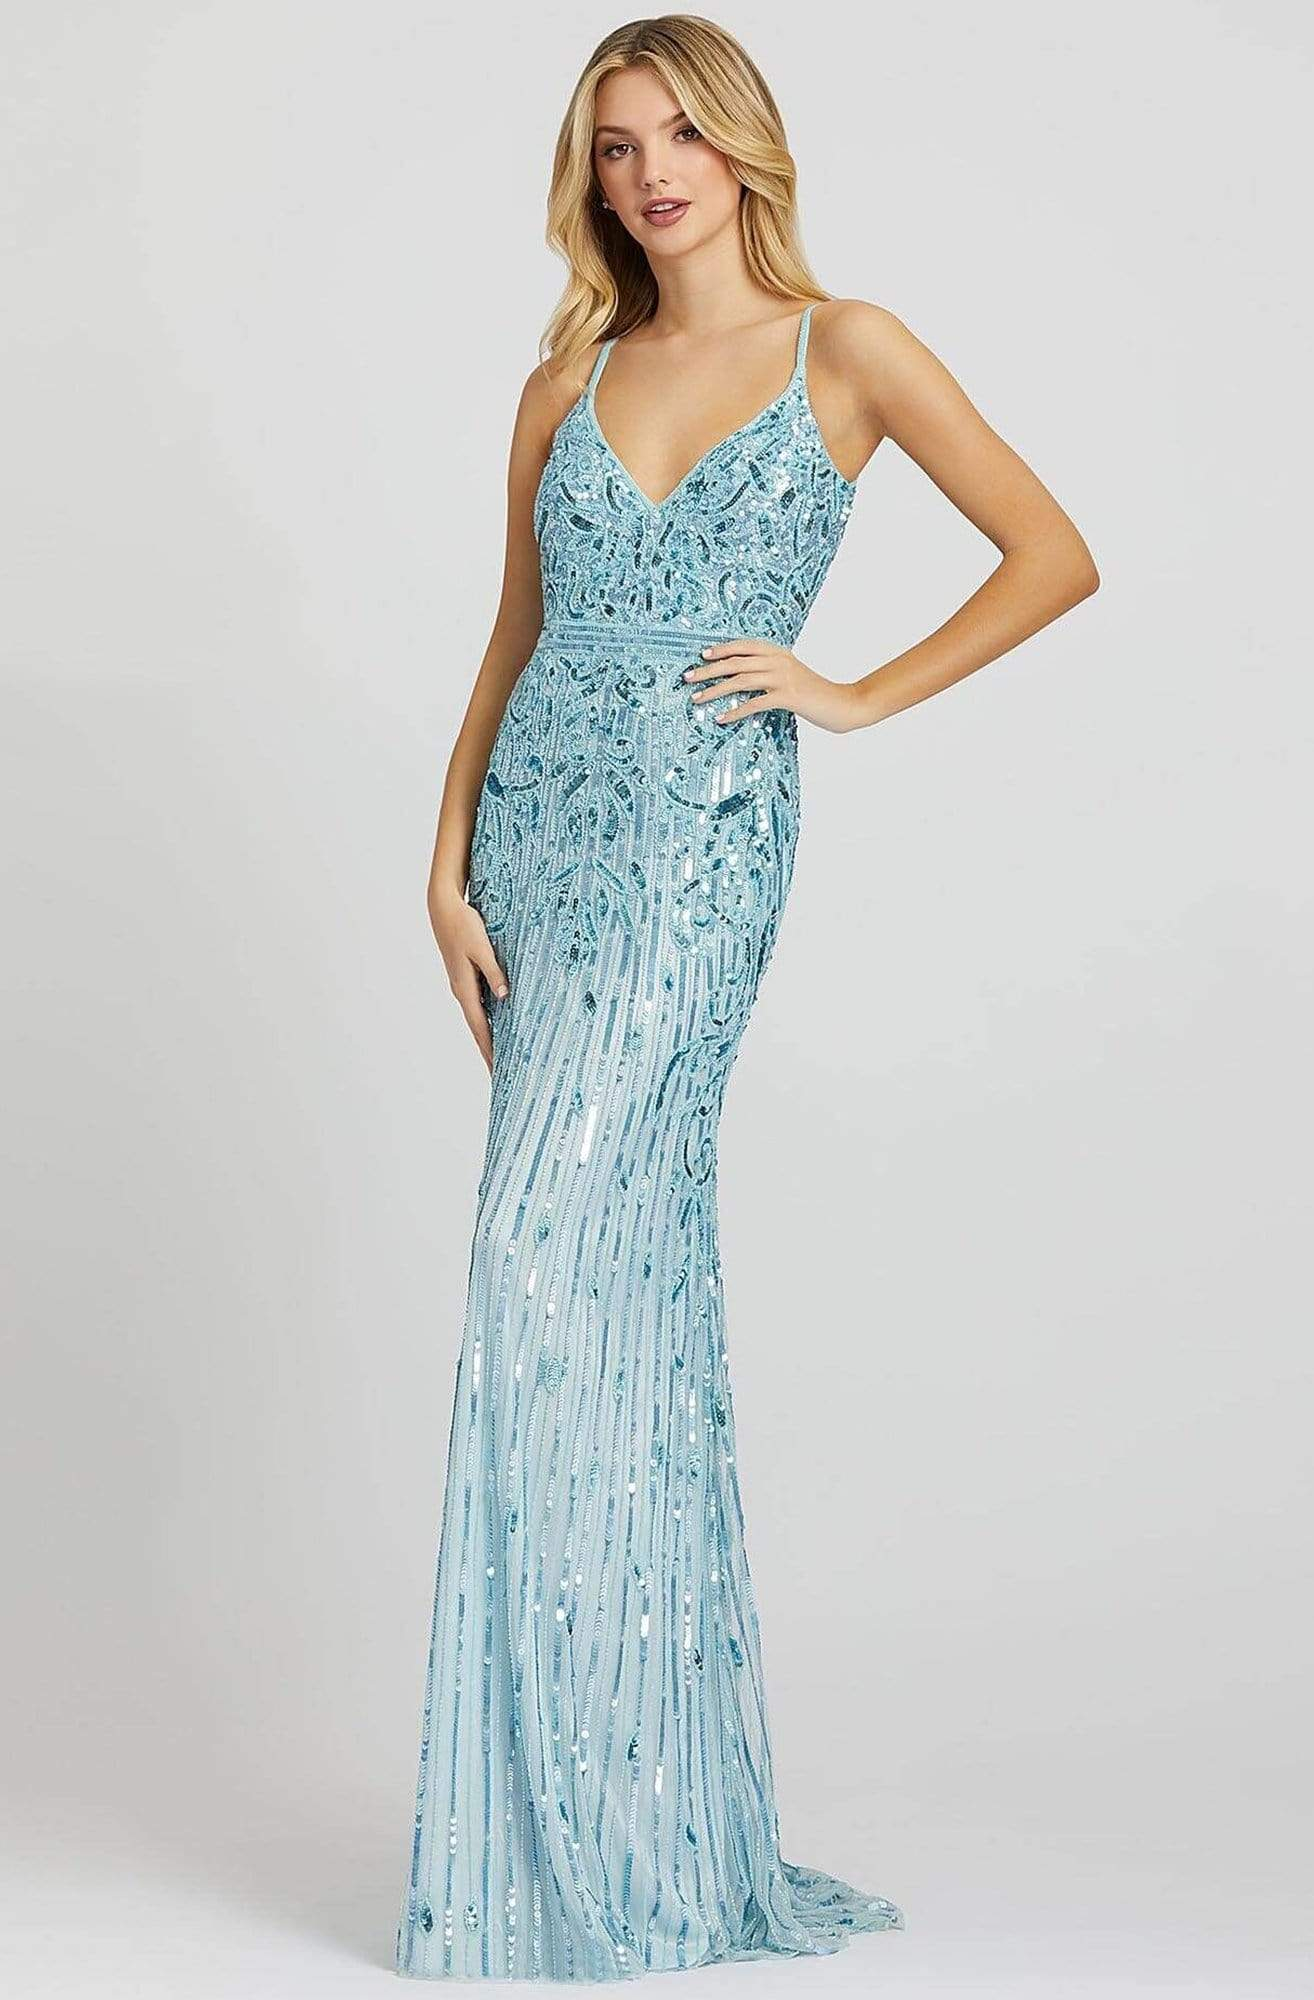 Mac Duggal Prom - 5001M Sleeveless V Neck Sequin Sheath Gown Prom Dresses 0 / Powder Blue